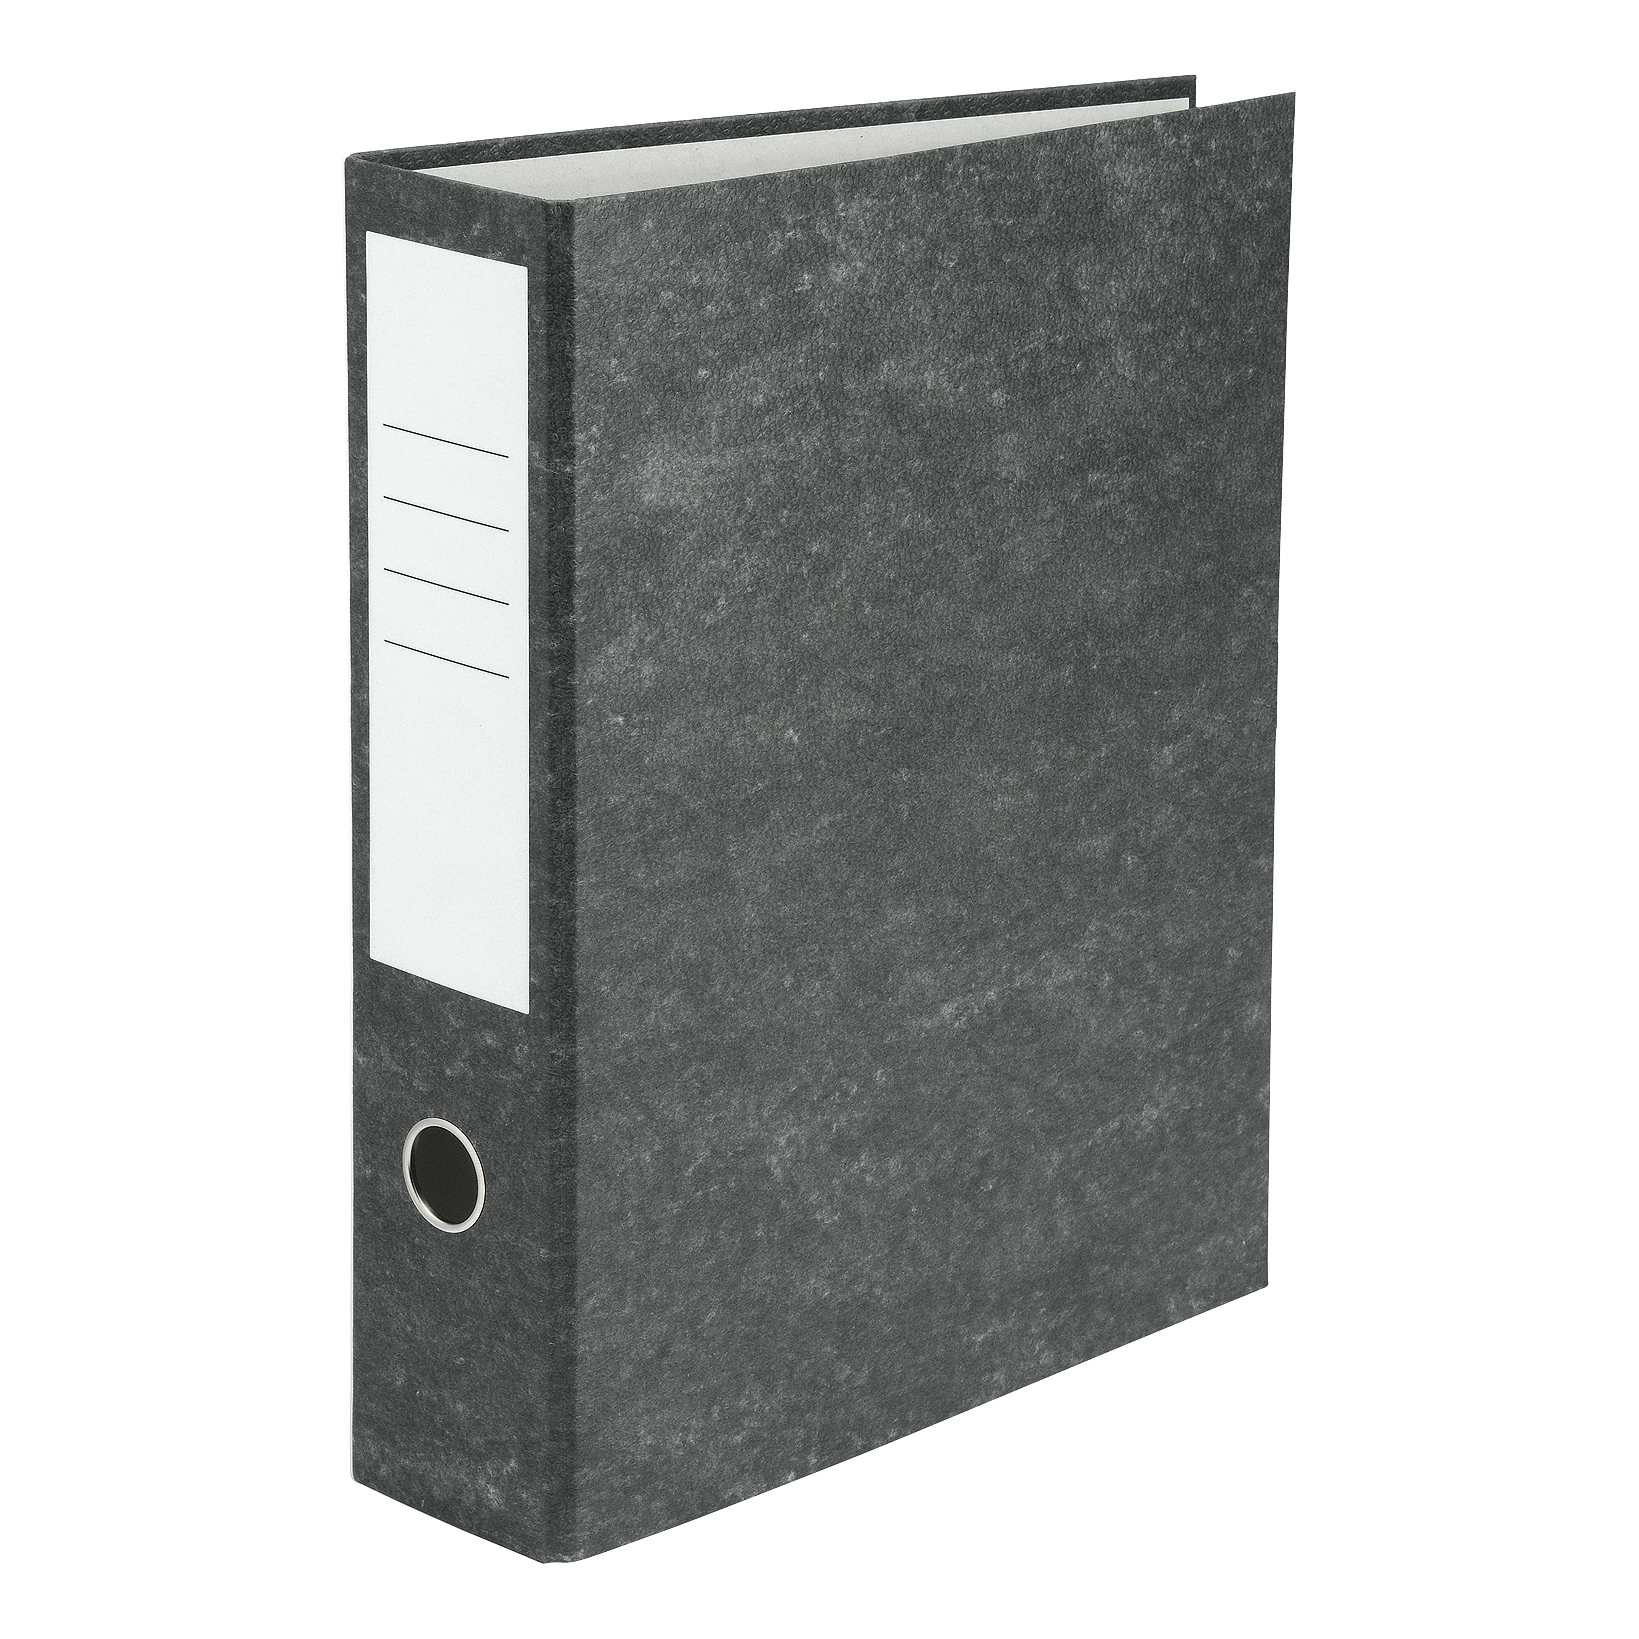 Lever Arch Files 5 Star Value Lever Arch File Foolscap Ref 26815 Pack 10